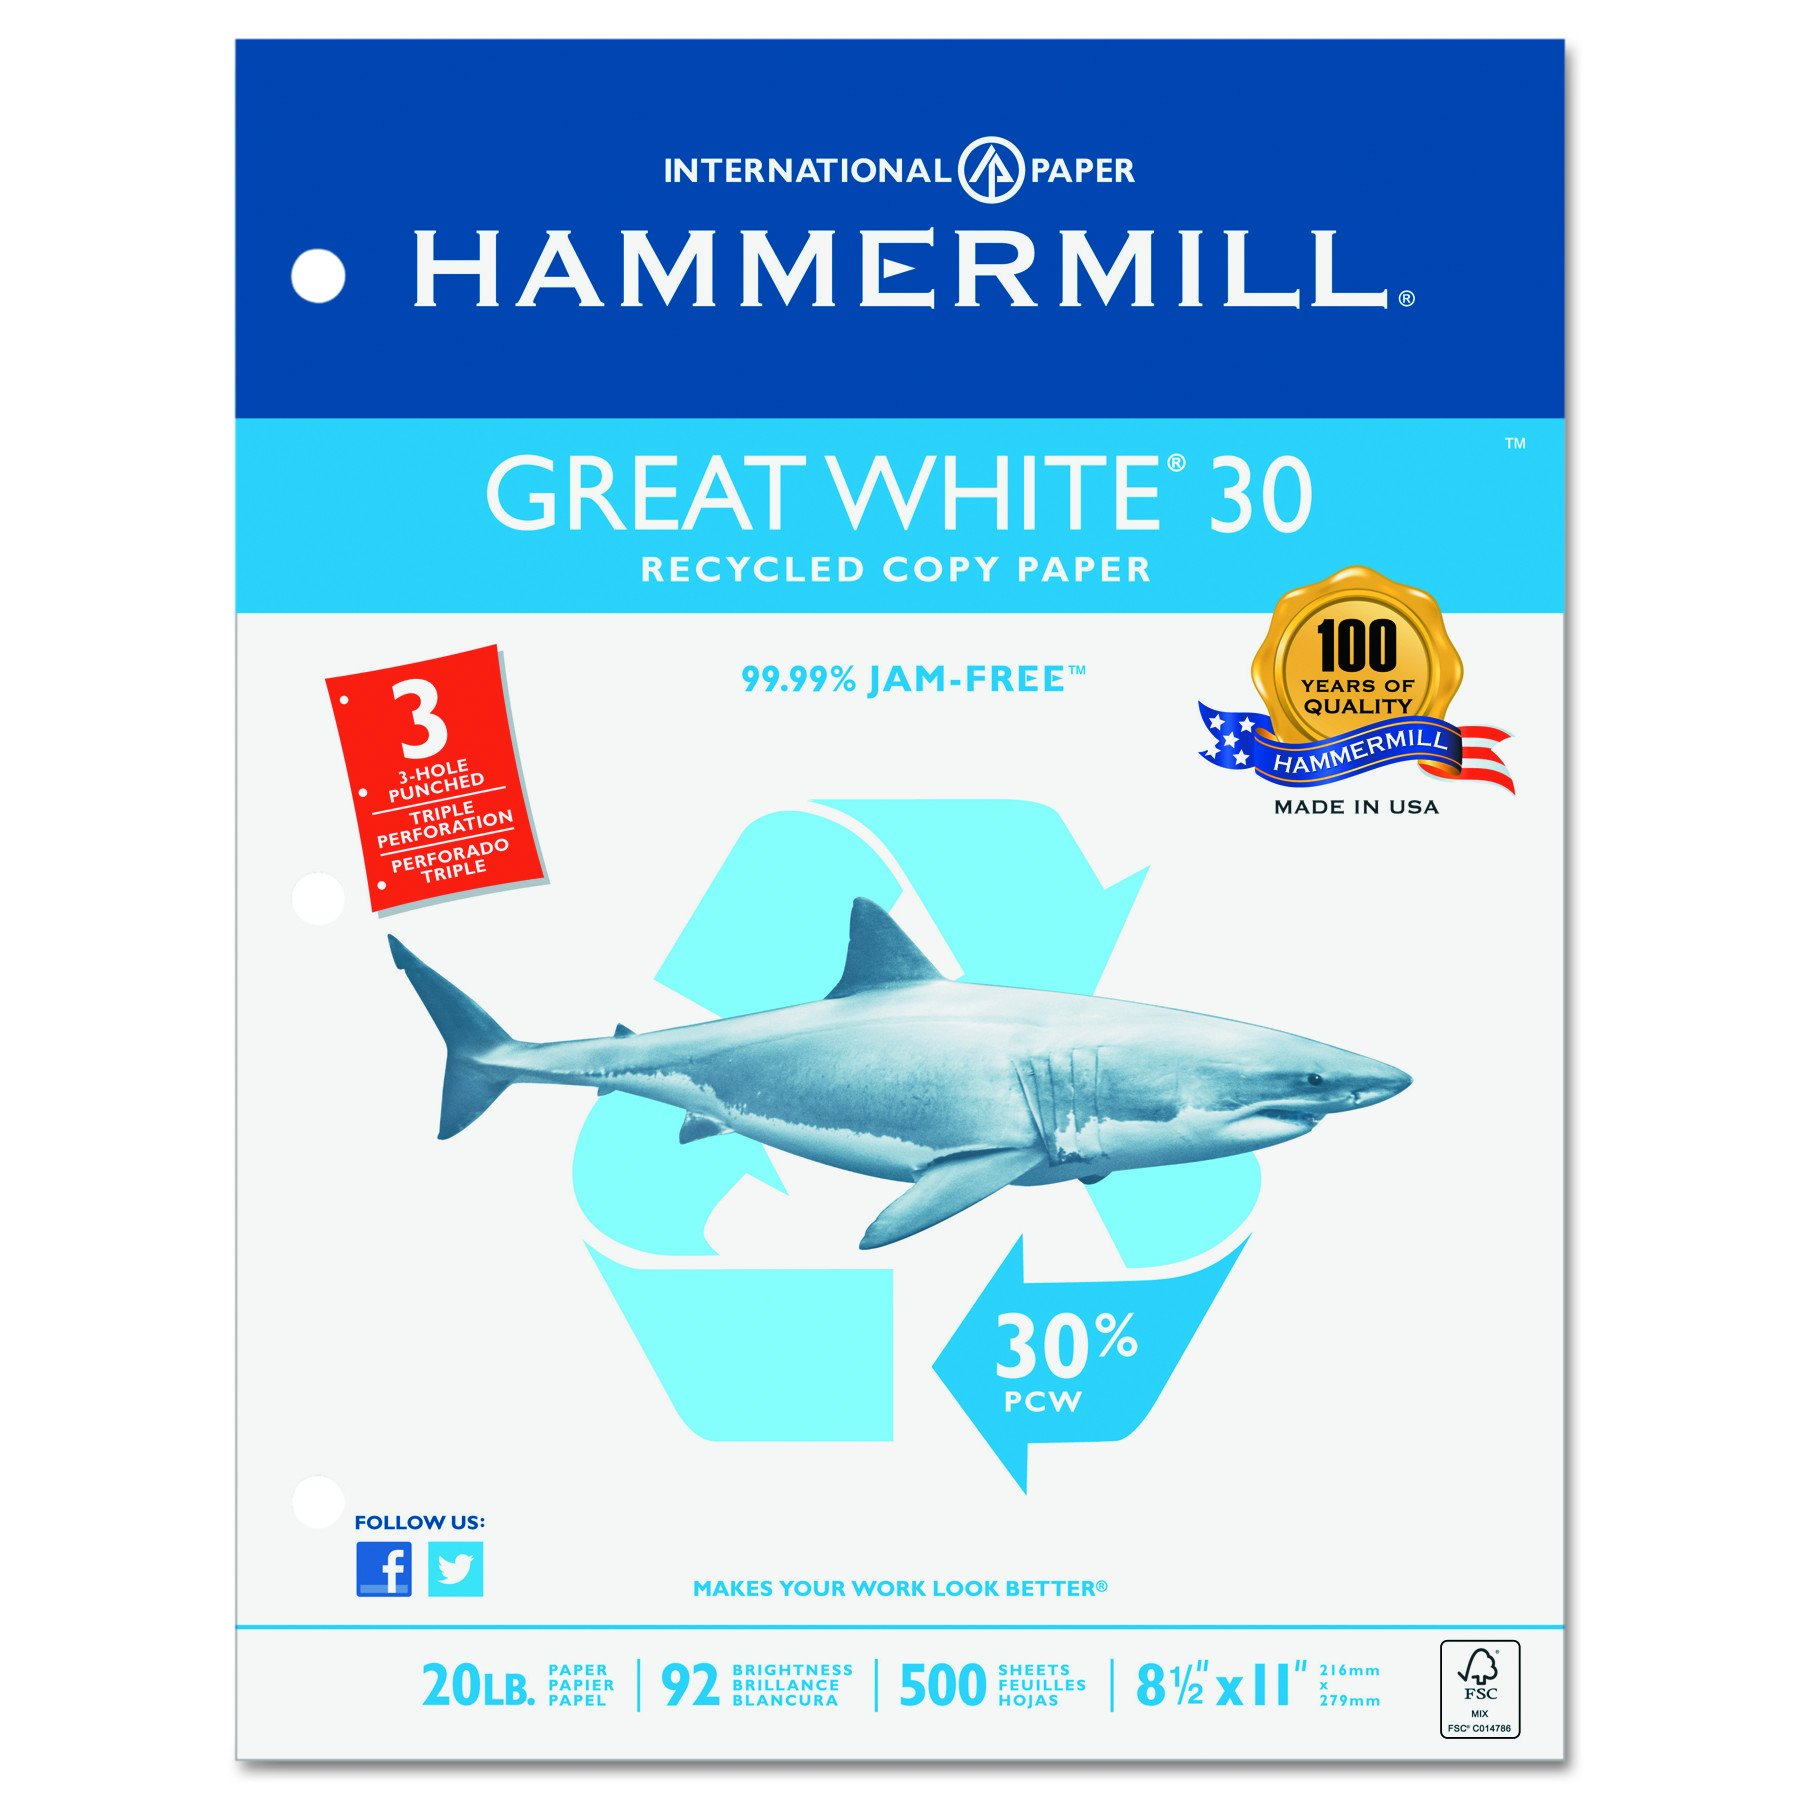 Hammermill Paper, Great White 30% Recycled Printer Paper, 8.5 x 11 Paper, Letter Size, 3 Hole, 20lb Paper, 92 Bright, 1 Ream / 500 Sheets (086702C) Acid Free Paper